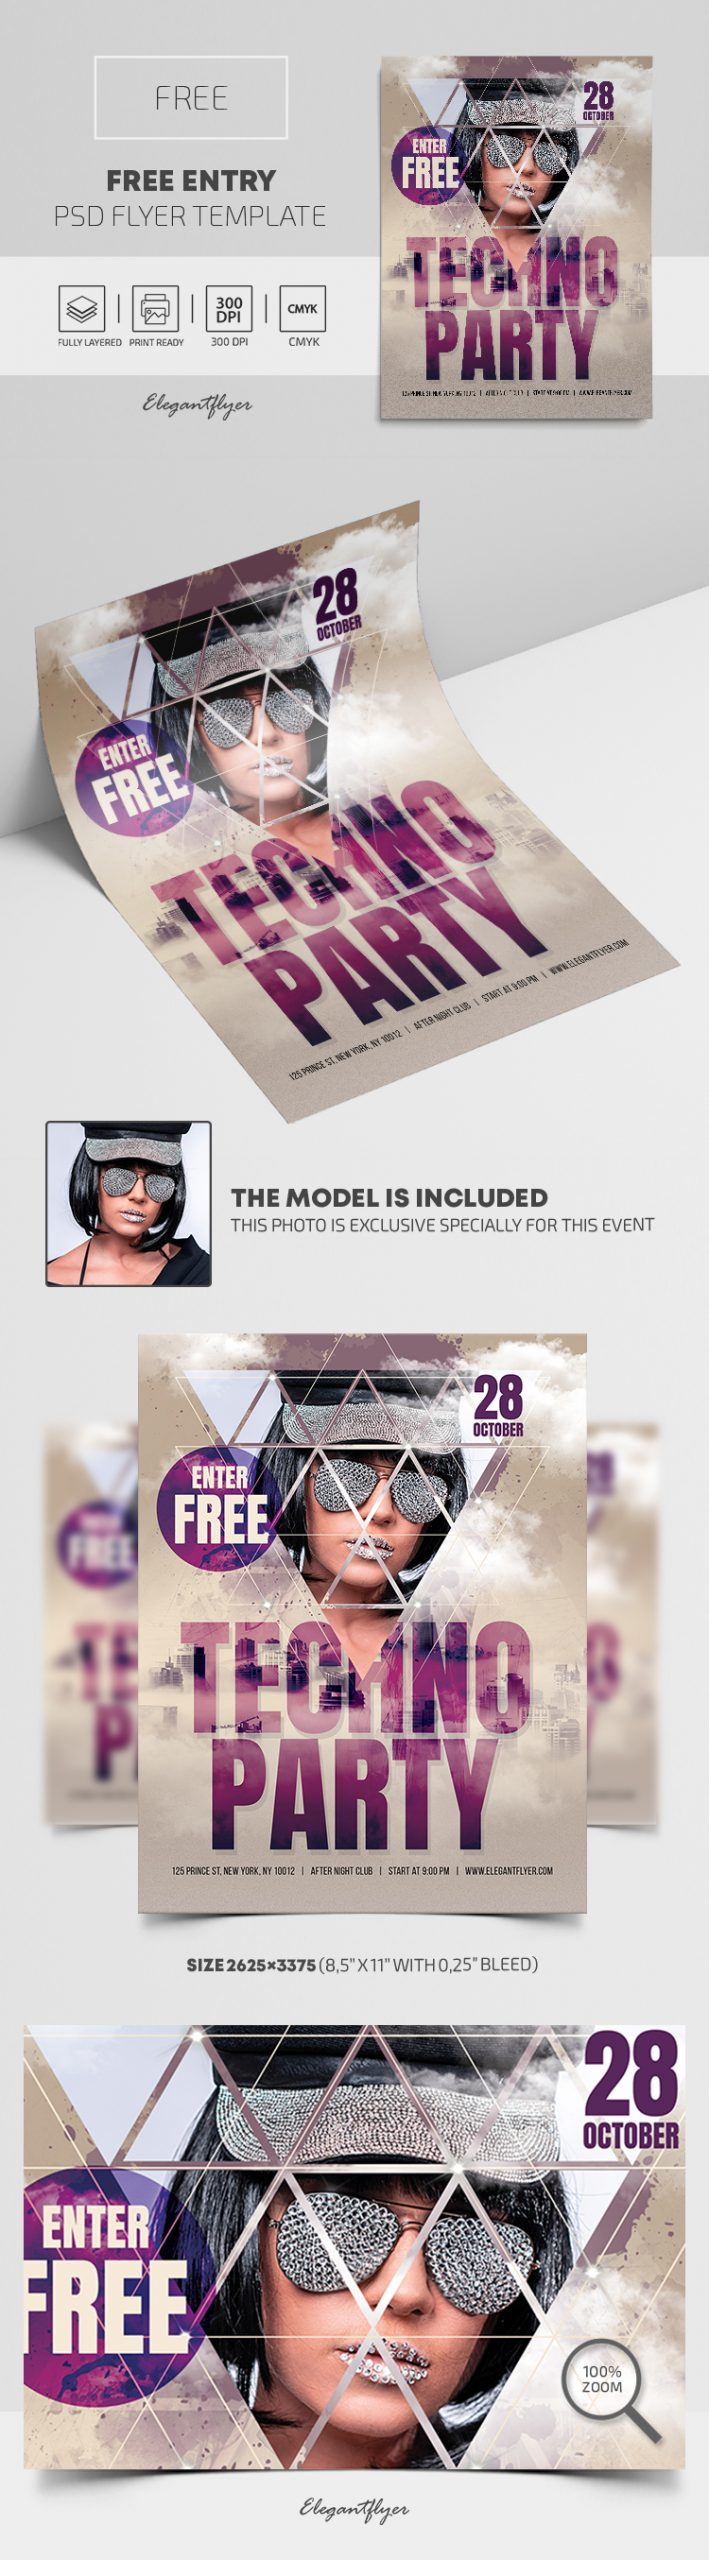 Free Entry – Free PSD Flyer Template